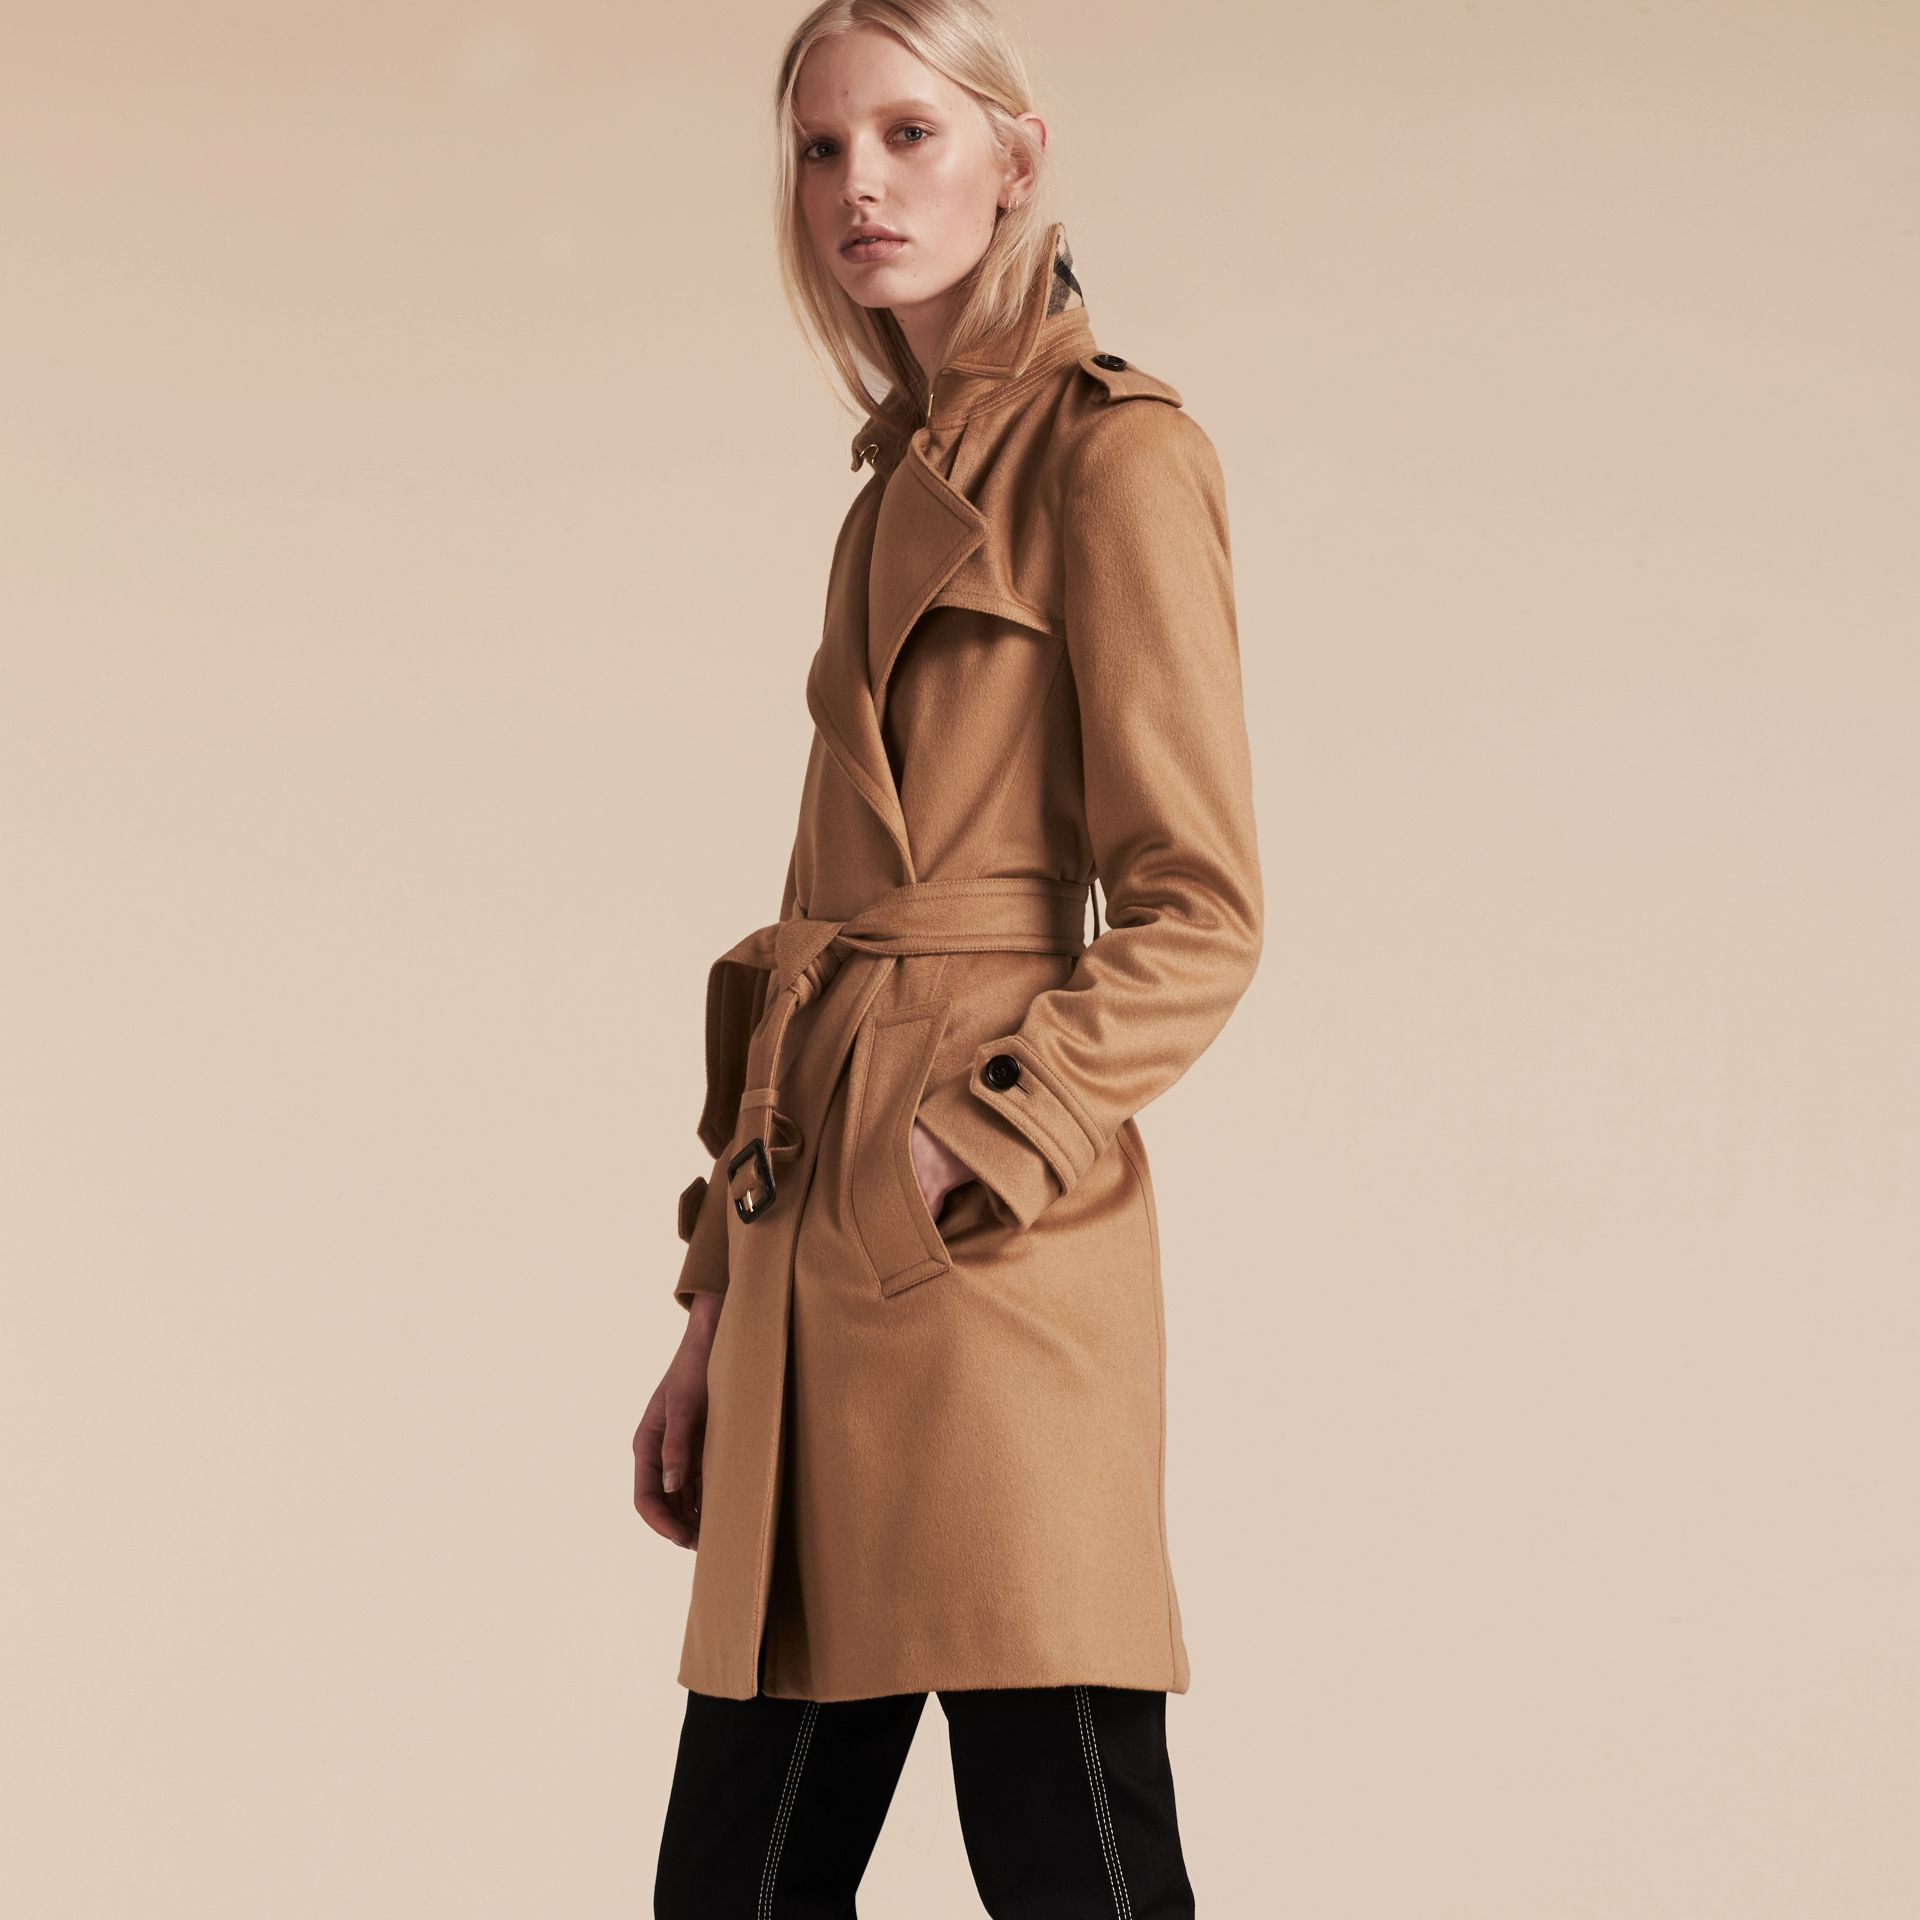 Camel Cashmere Wrap Trench Coat Camel - gallery image 1